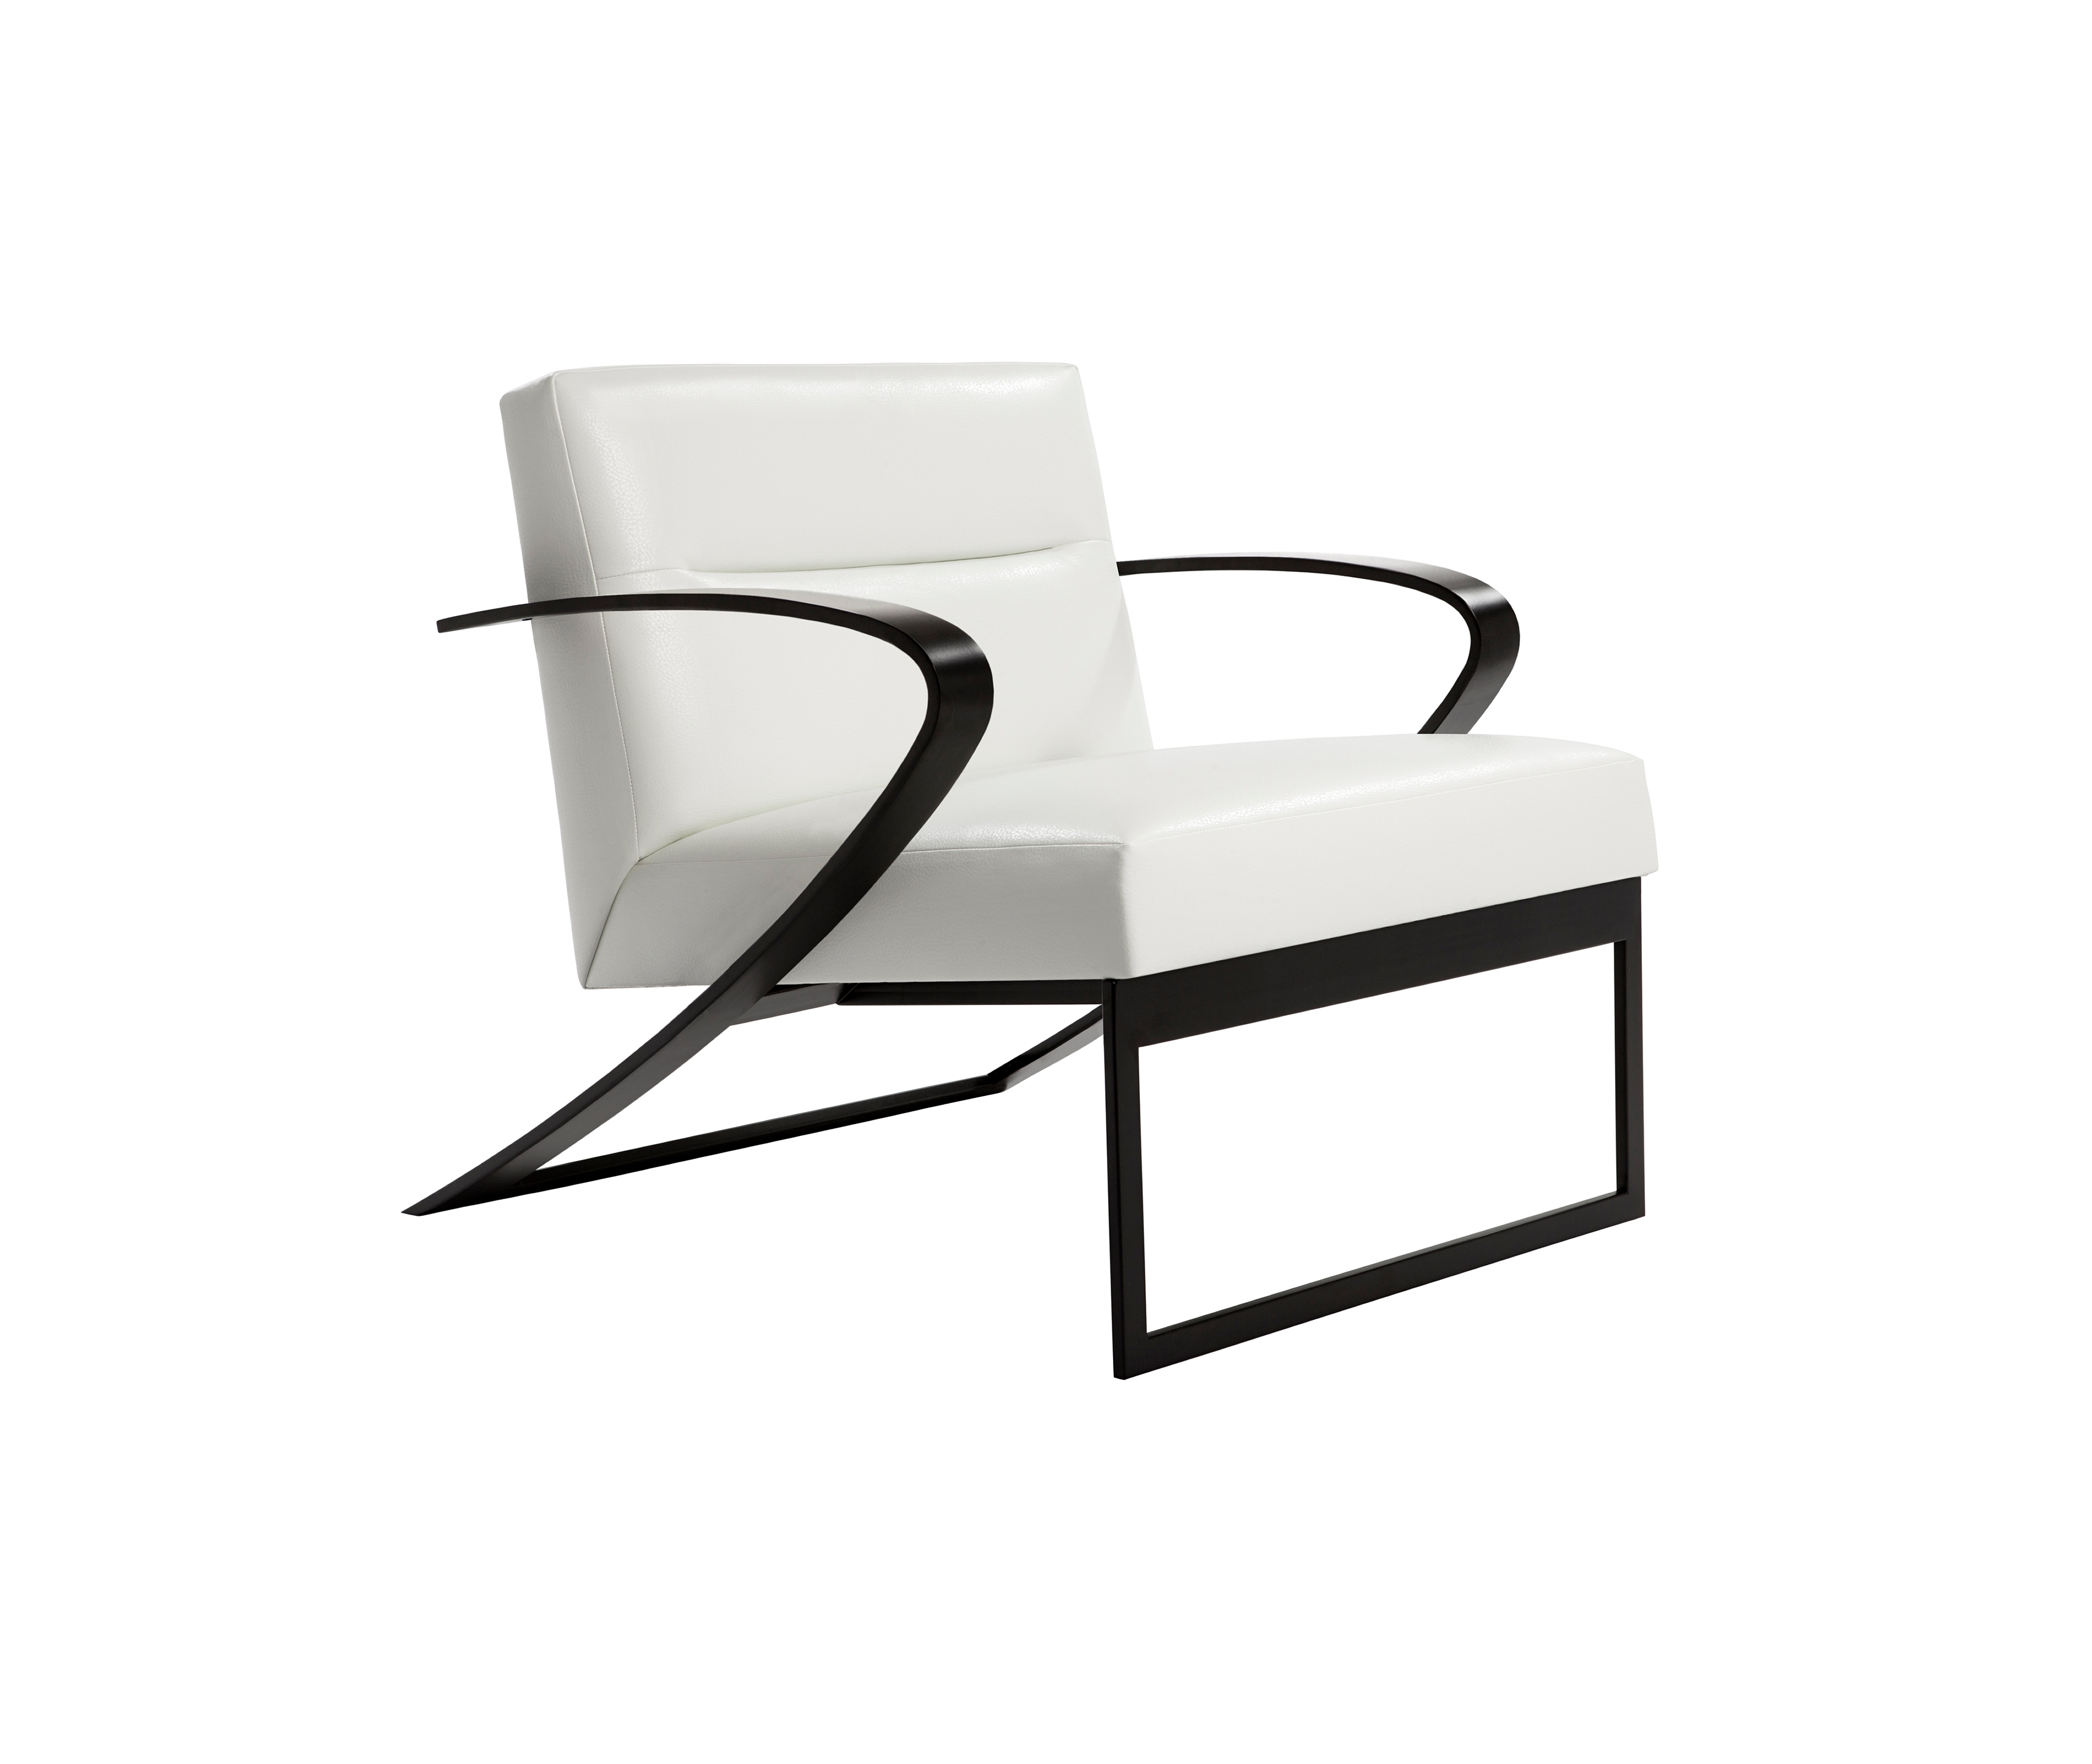 Dennis Miller_Impala Chair_int_products_2